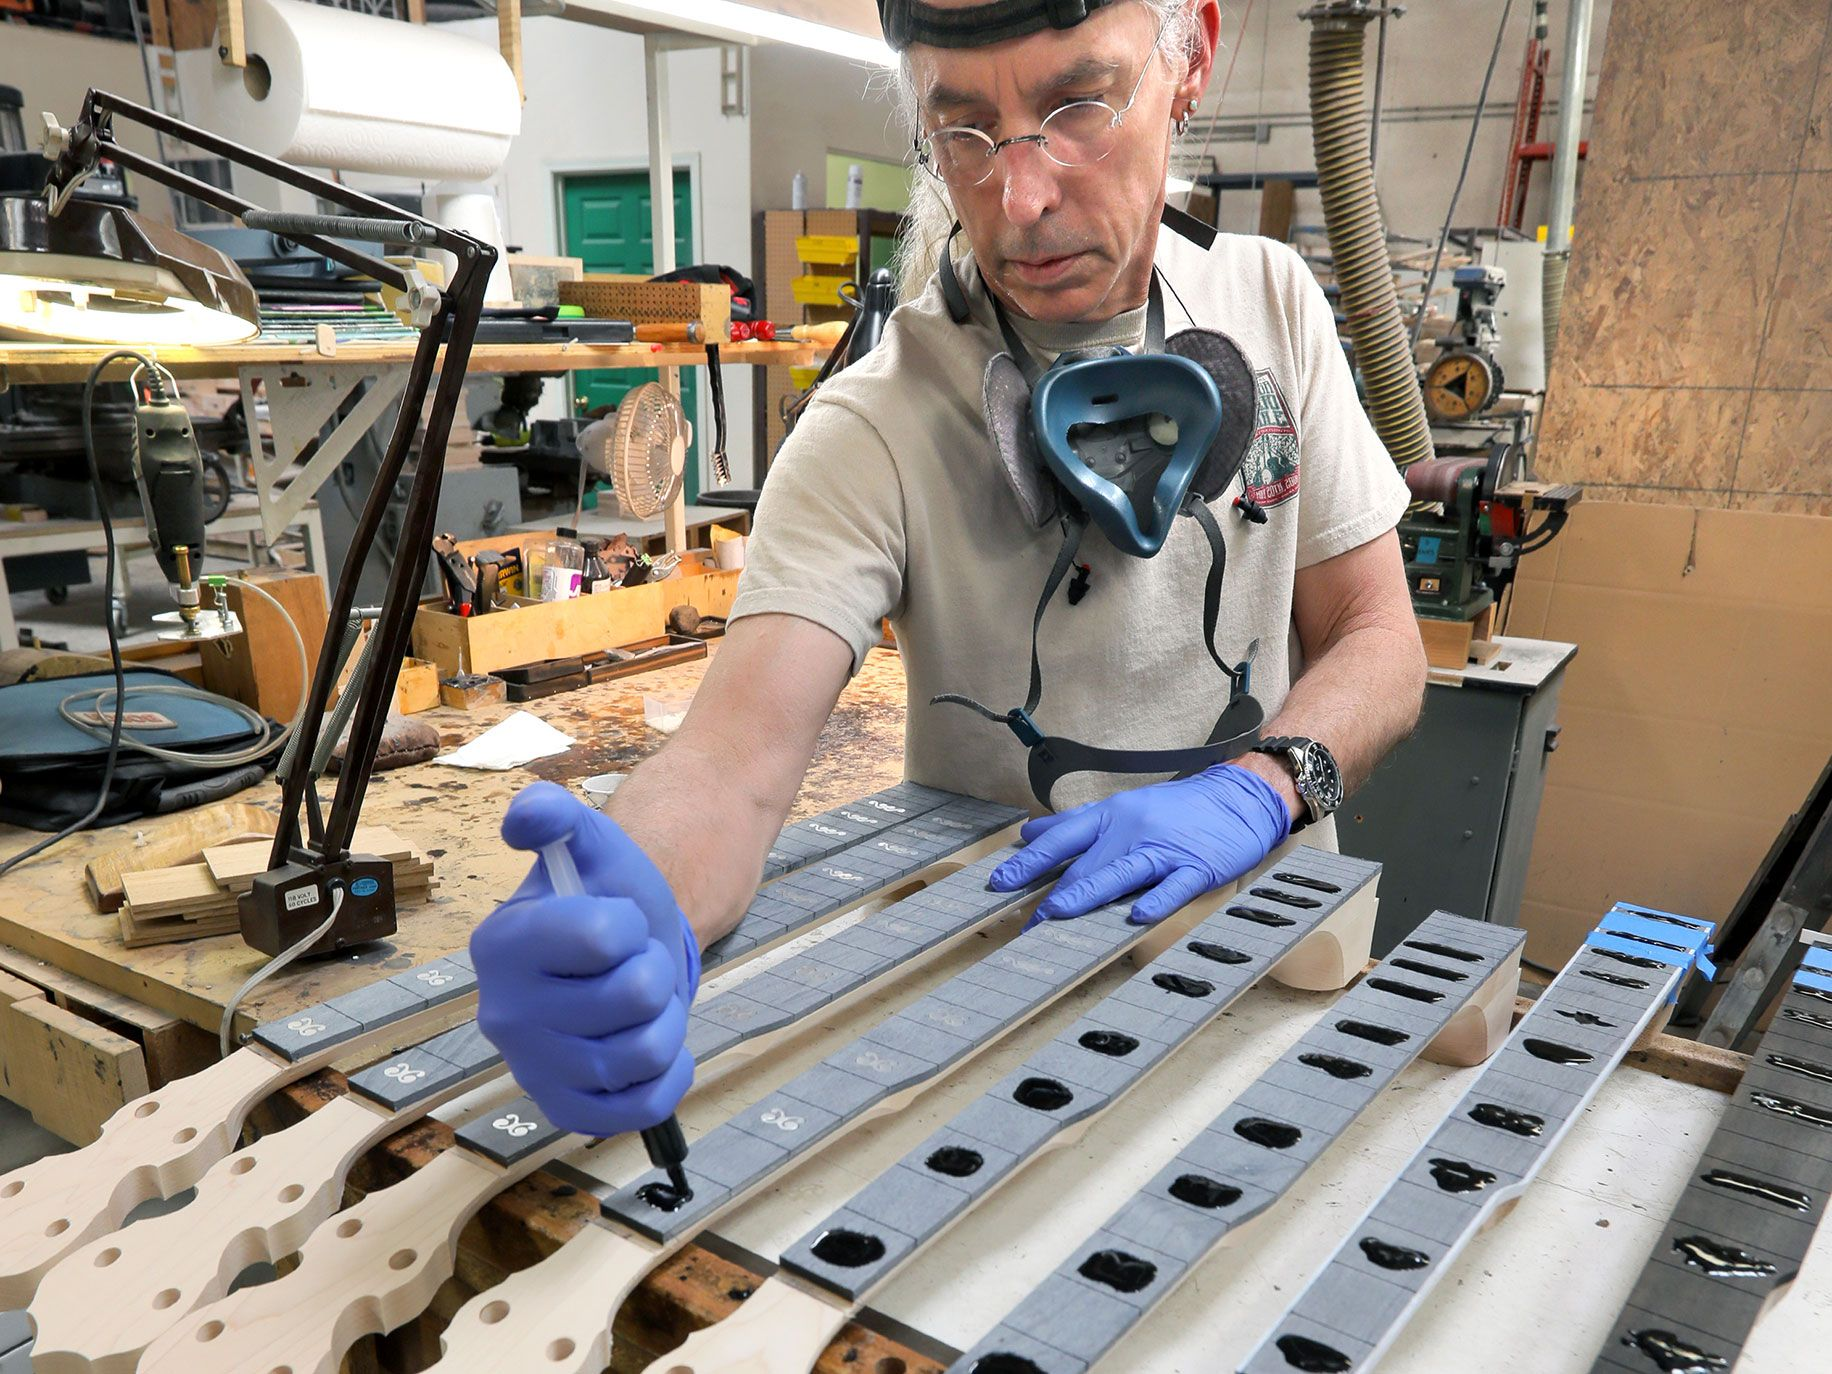 Marty Moore, a longtime employee of the Deering Banjo Company, applies epoxy resin for the intricate fret inlays for banjo fingerboards.